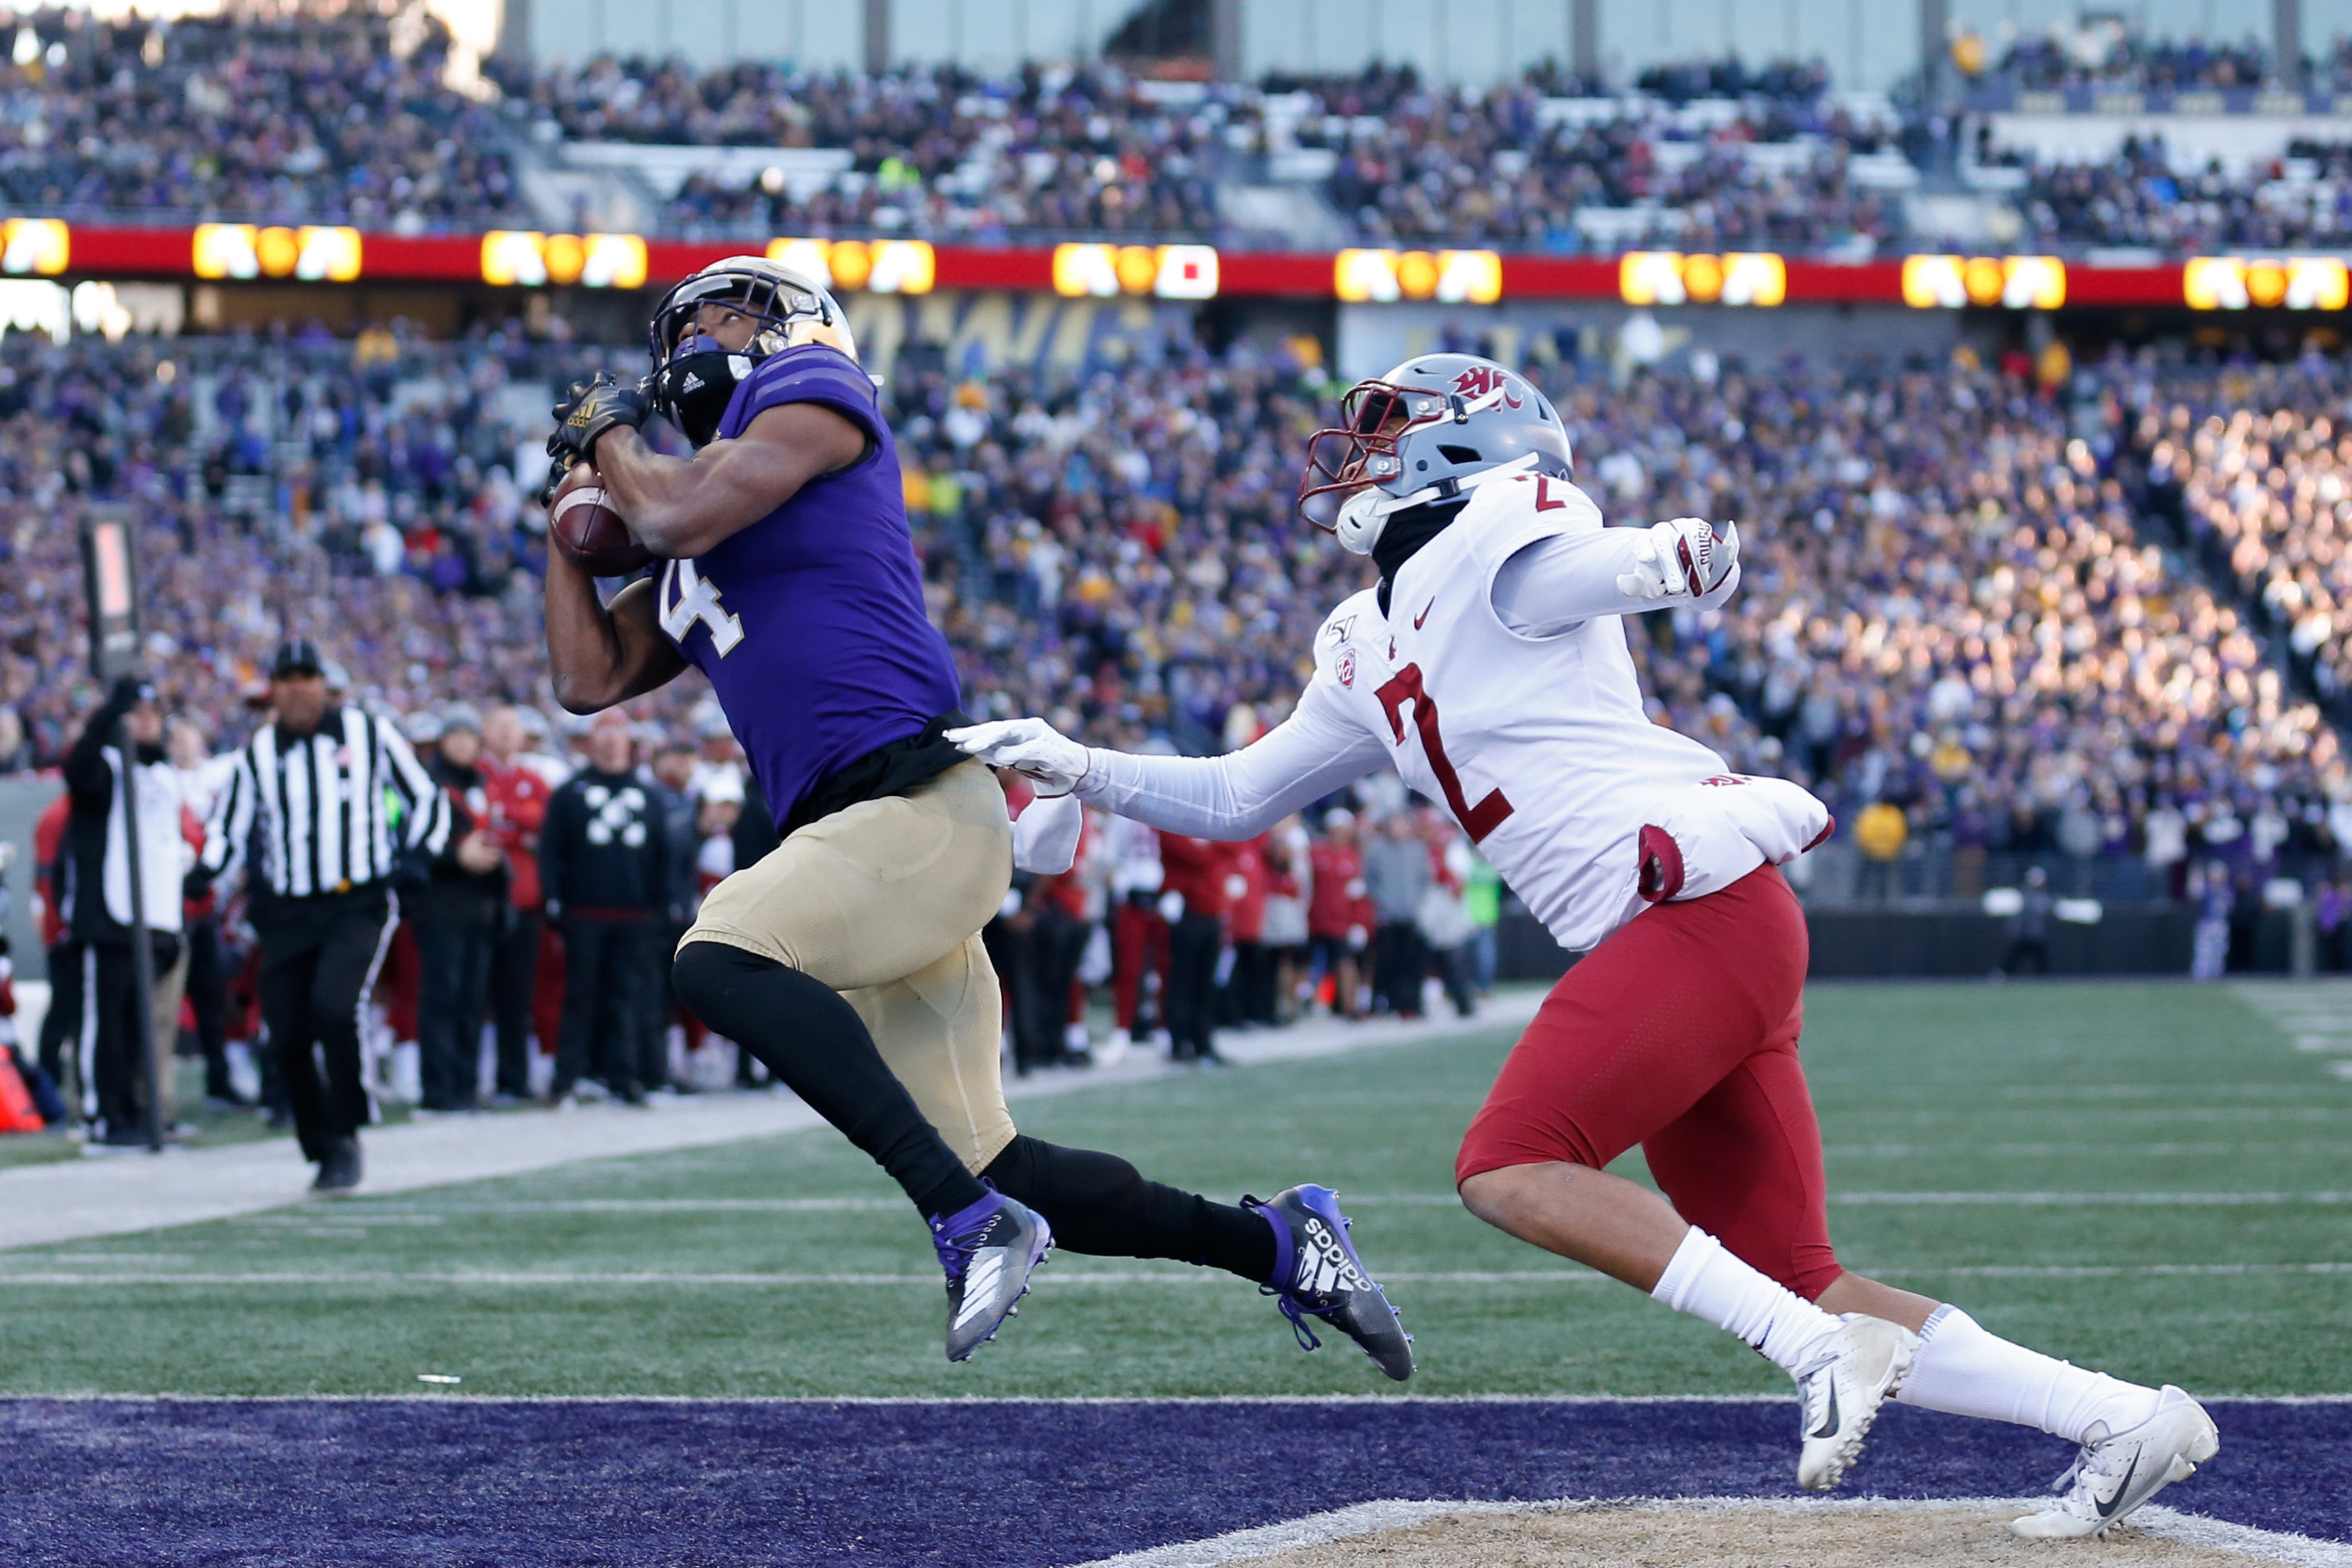 Hands Down: Best Play of the Apple Cup